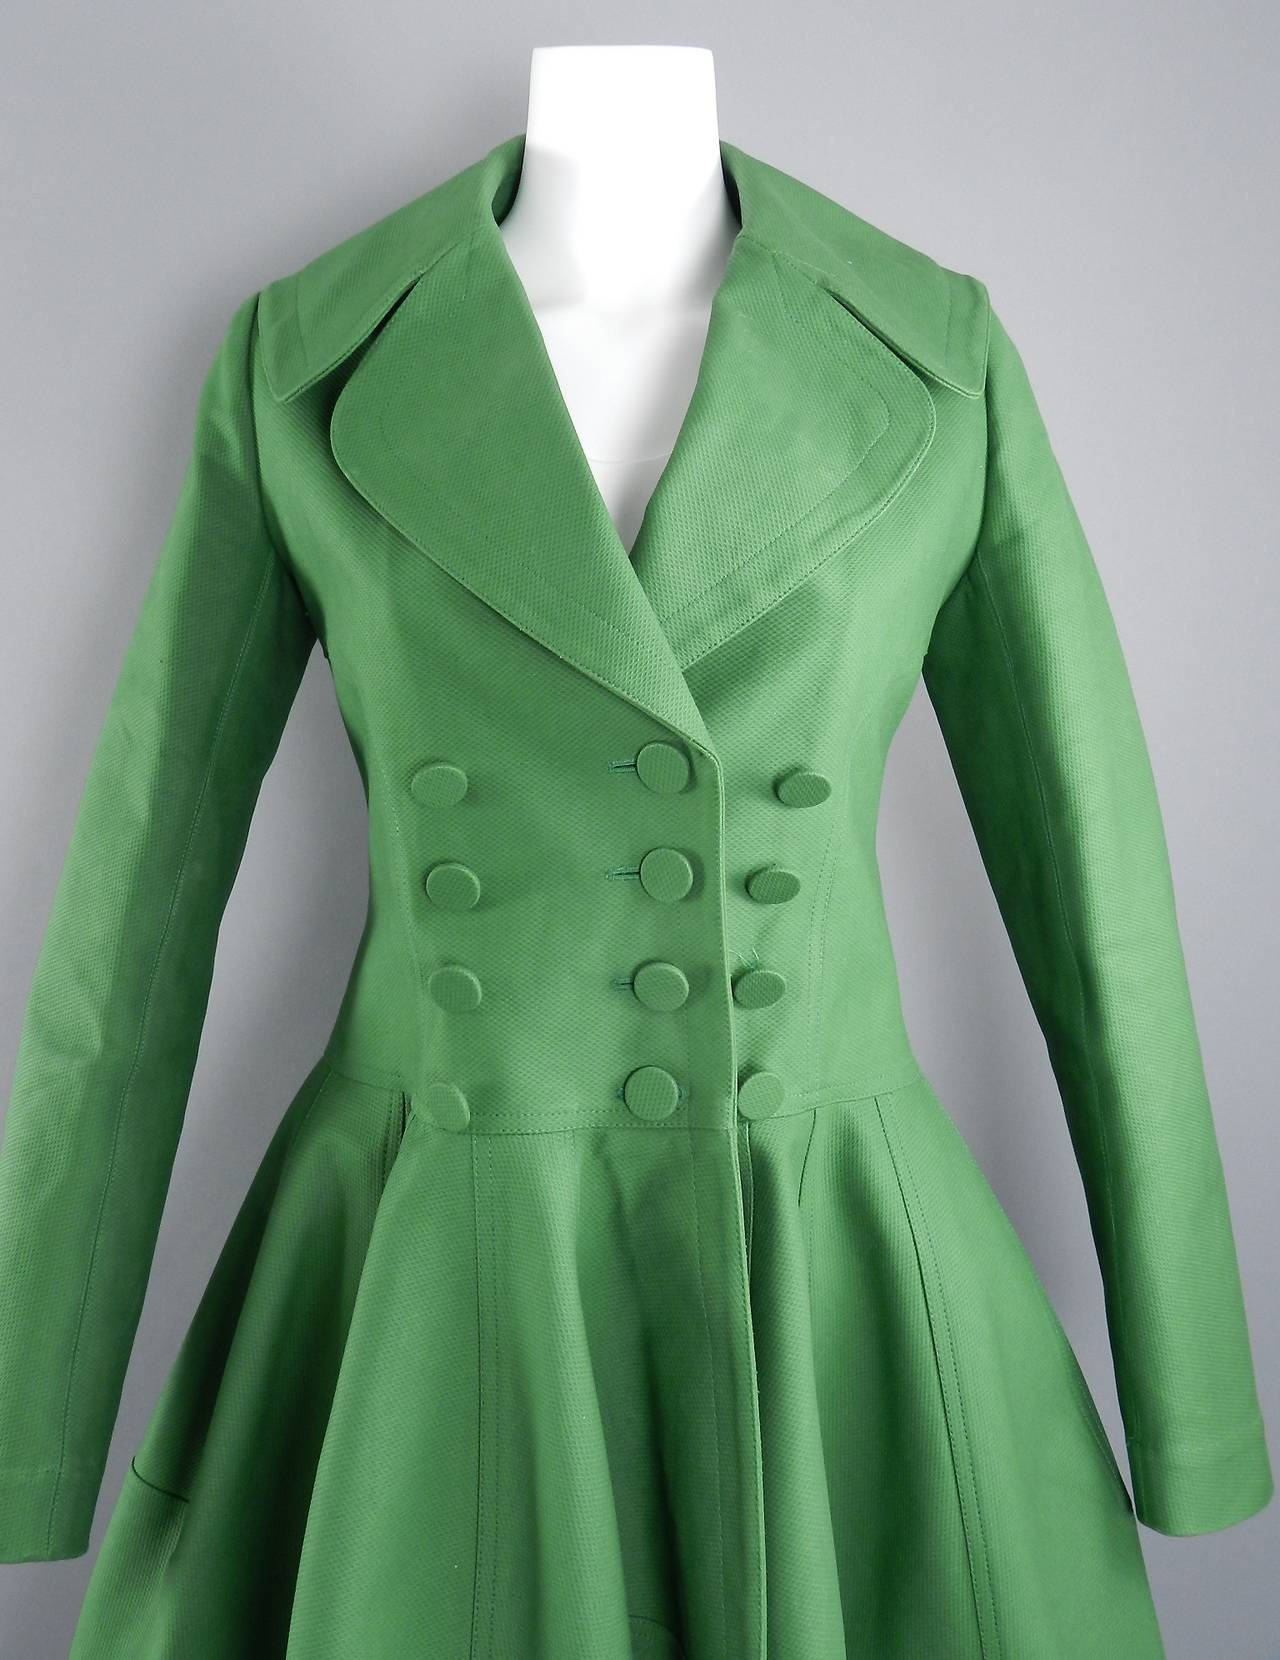 Alaia Spring Green Cotton Structured Coat 5